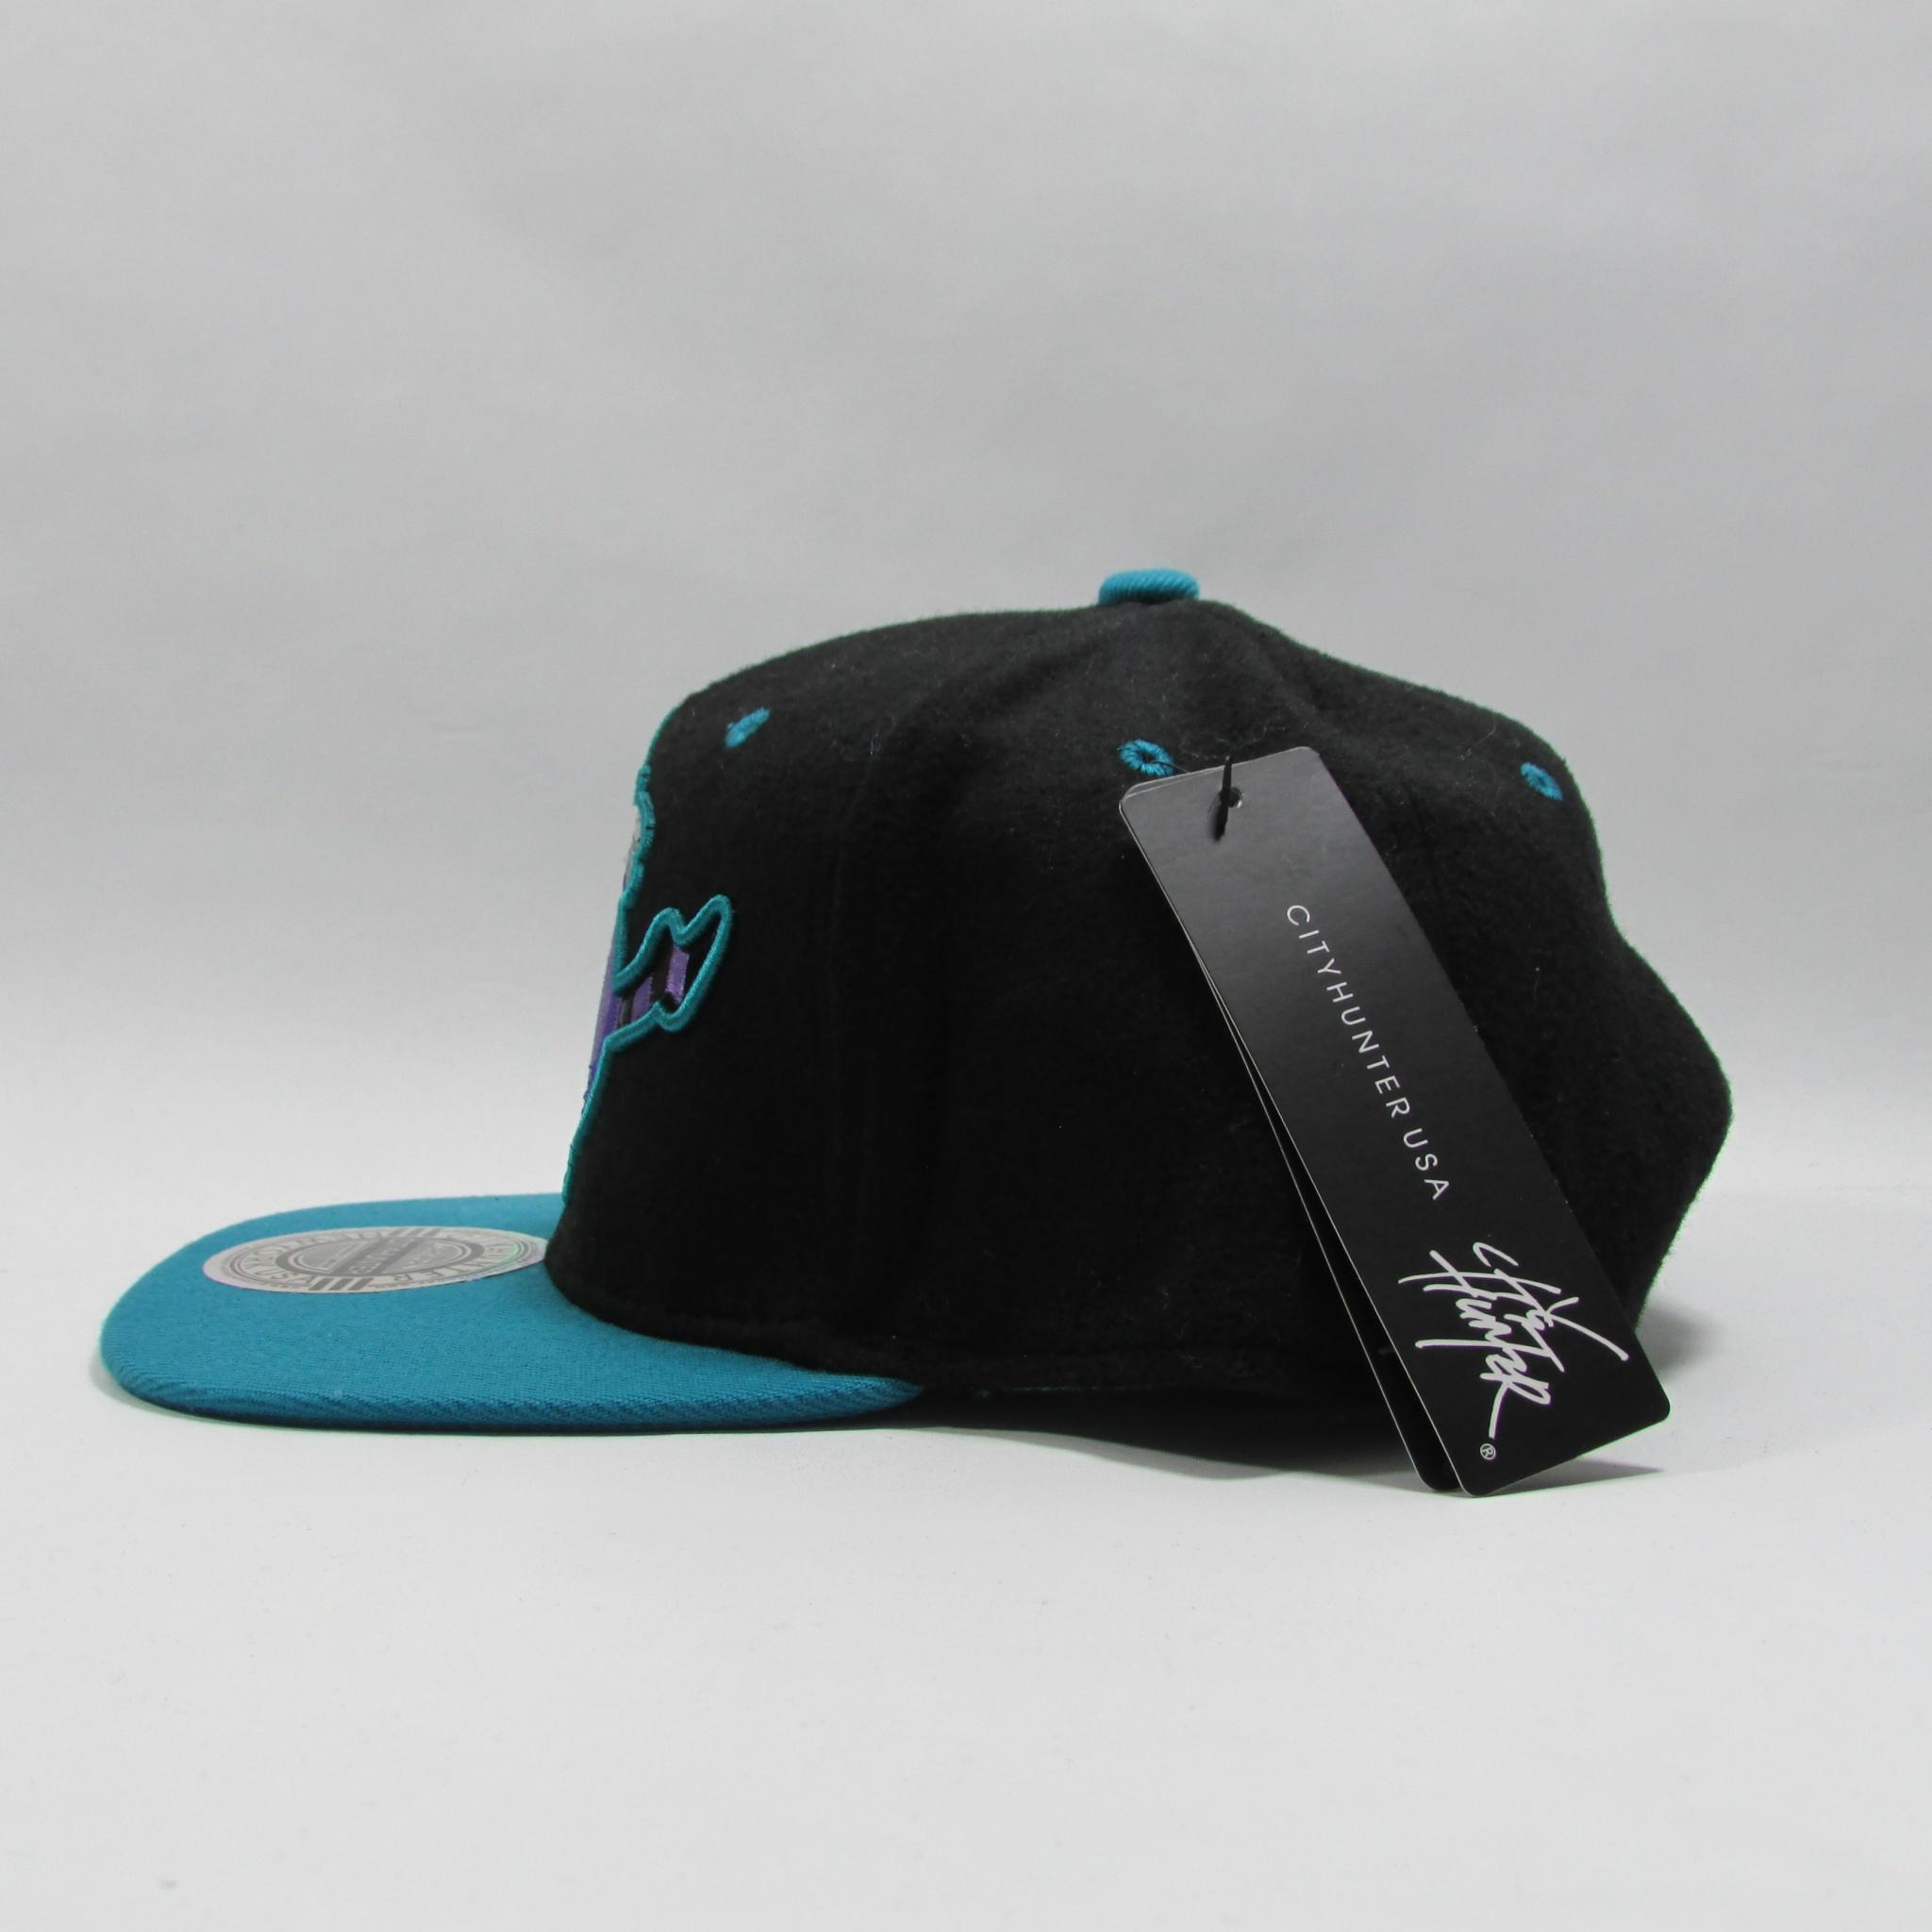 City Hunter Rad Pig Snapback Hat